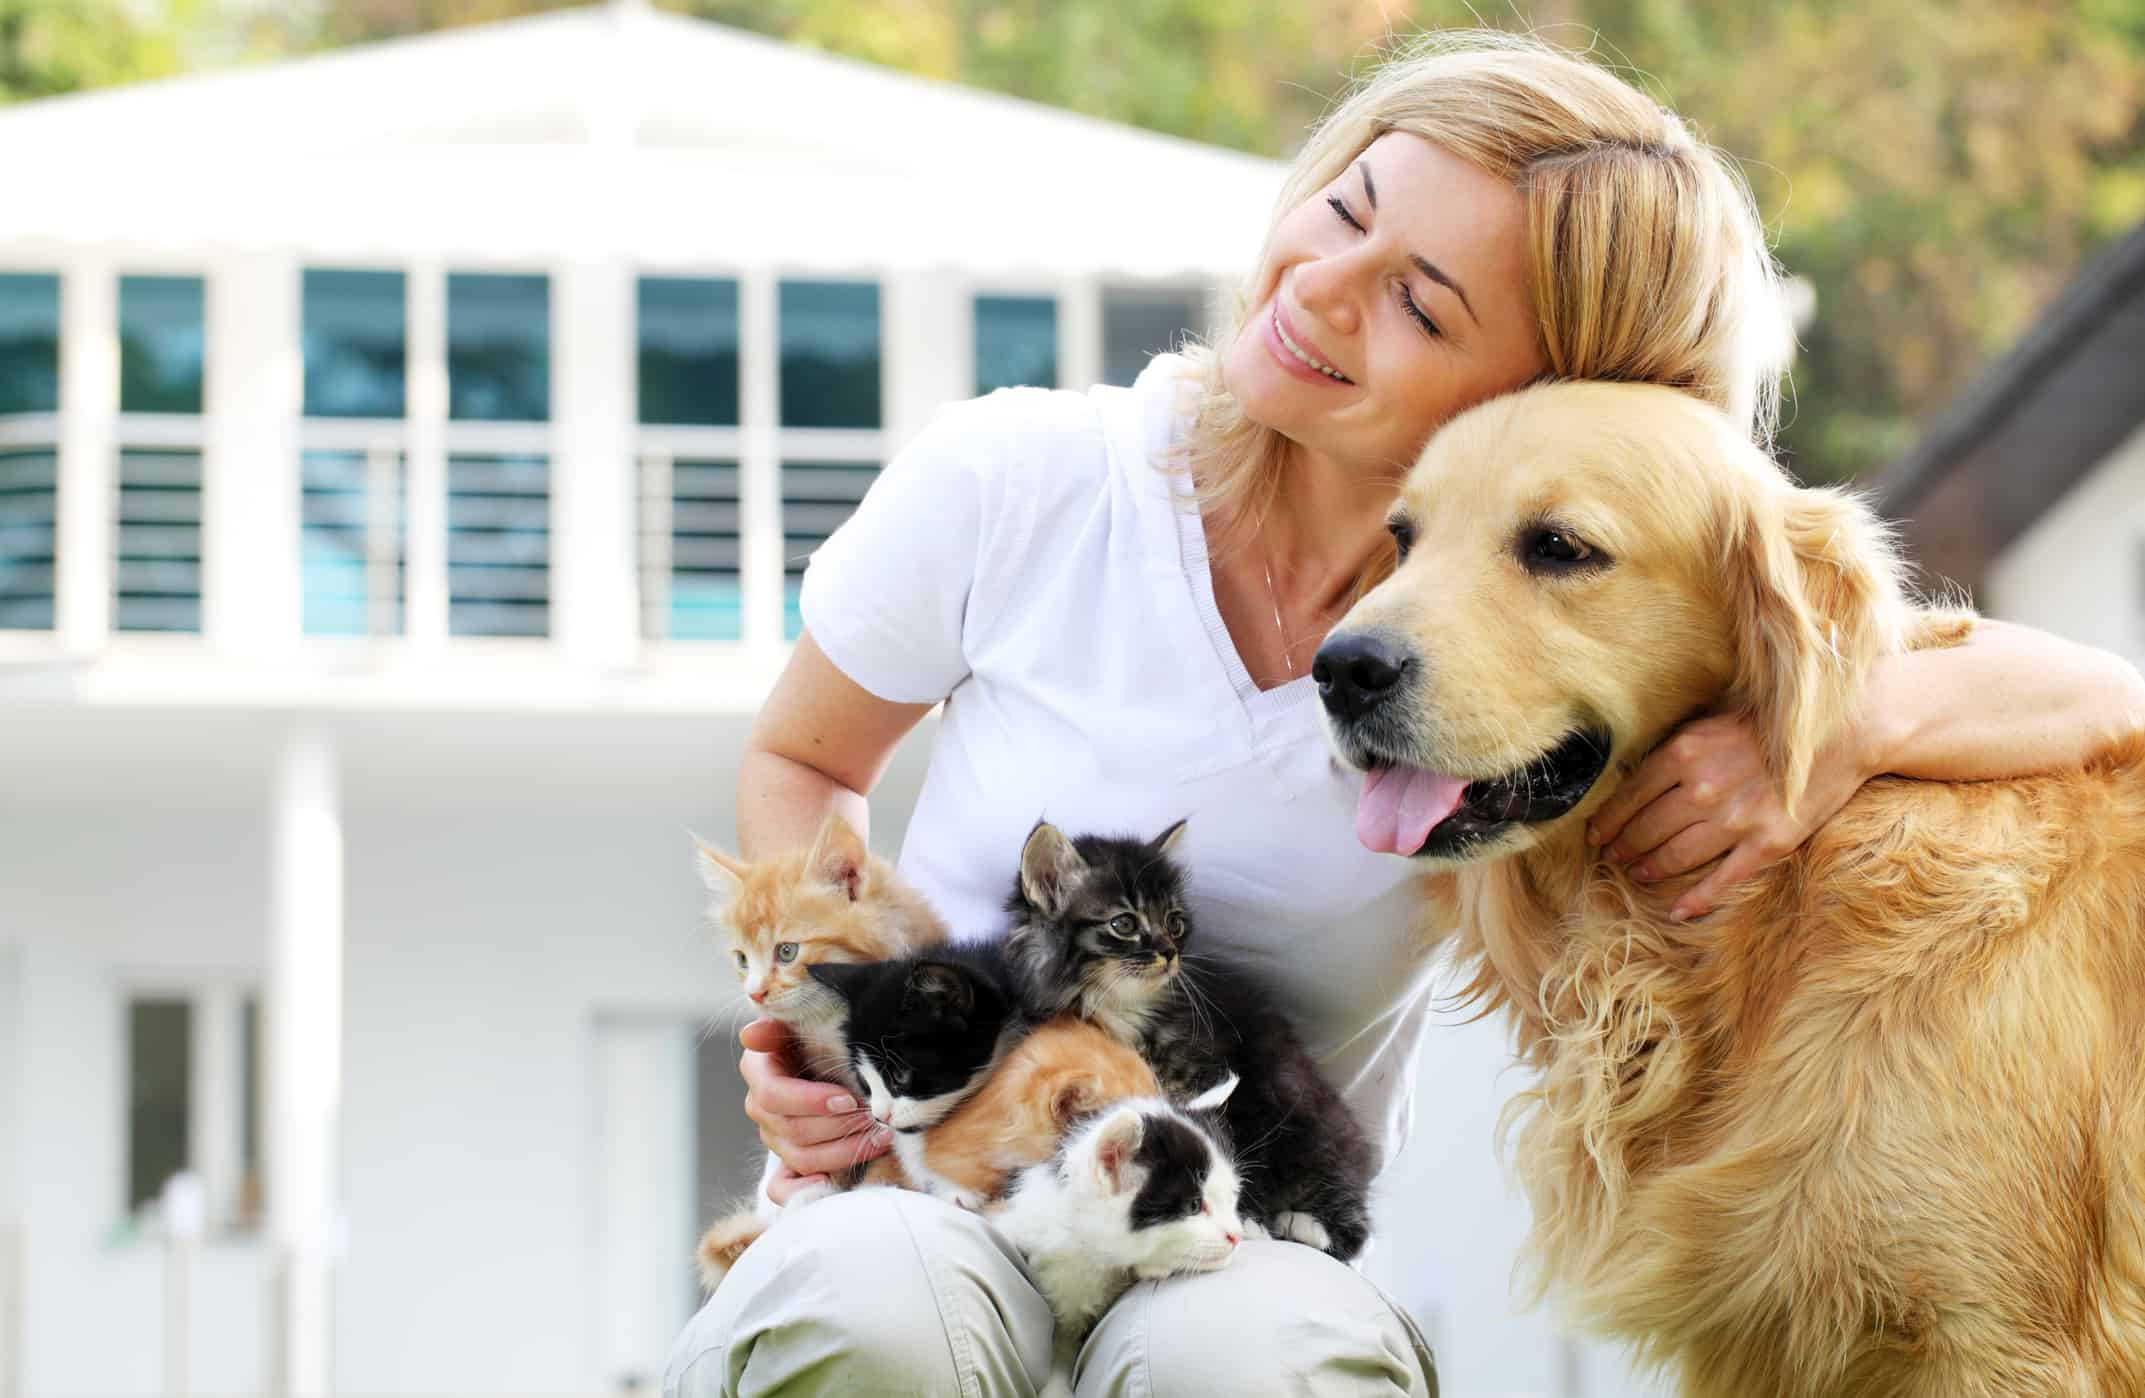 girl enjoying outdoor with group of a little cats and dog.